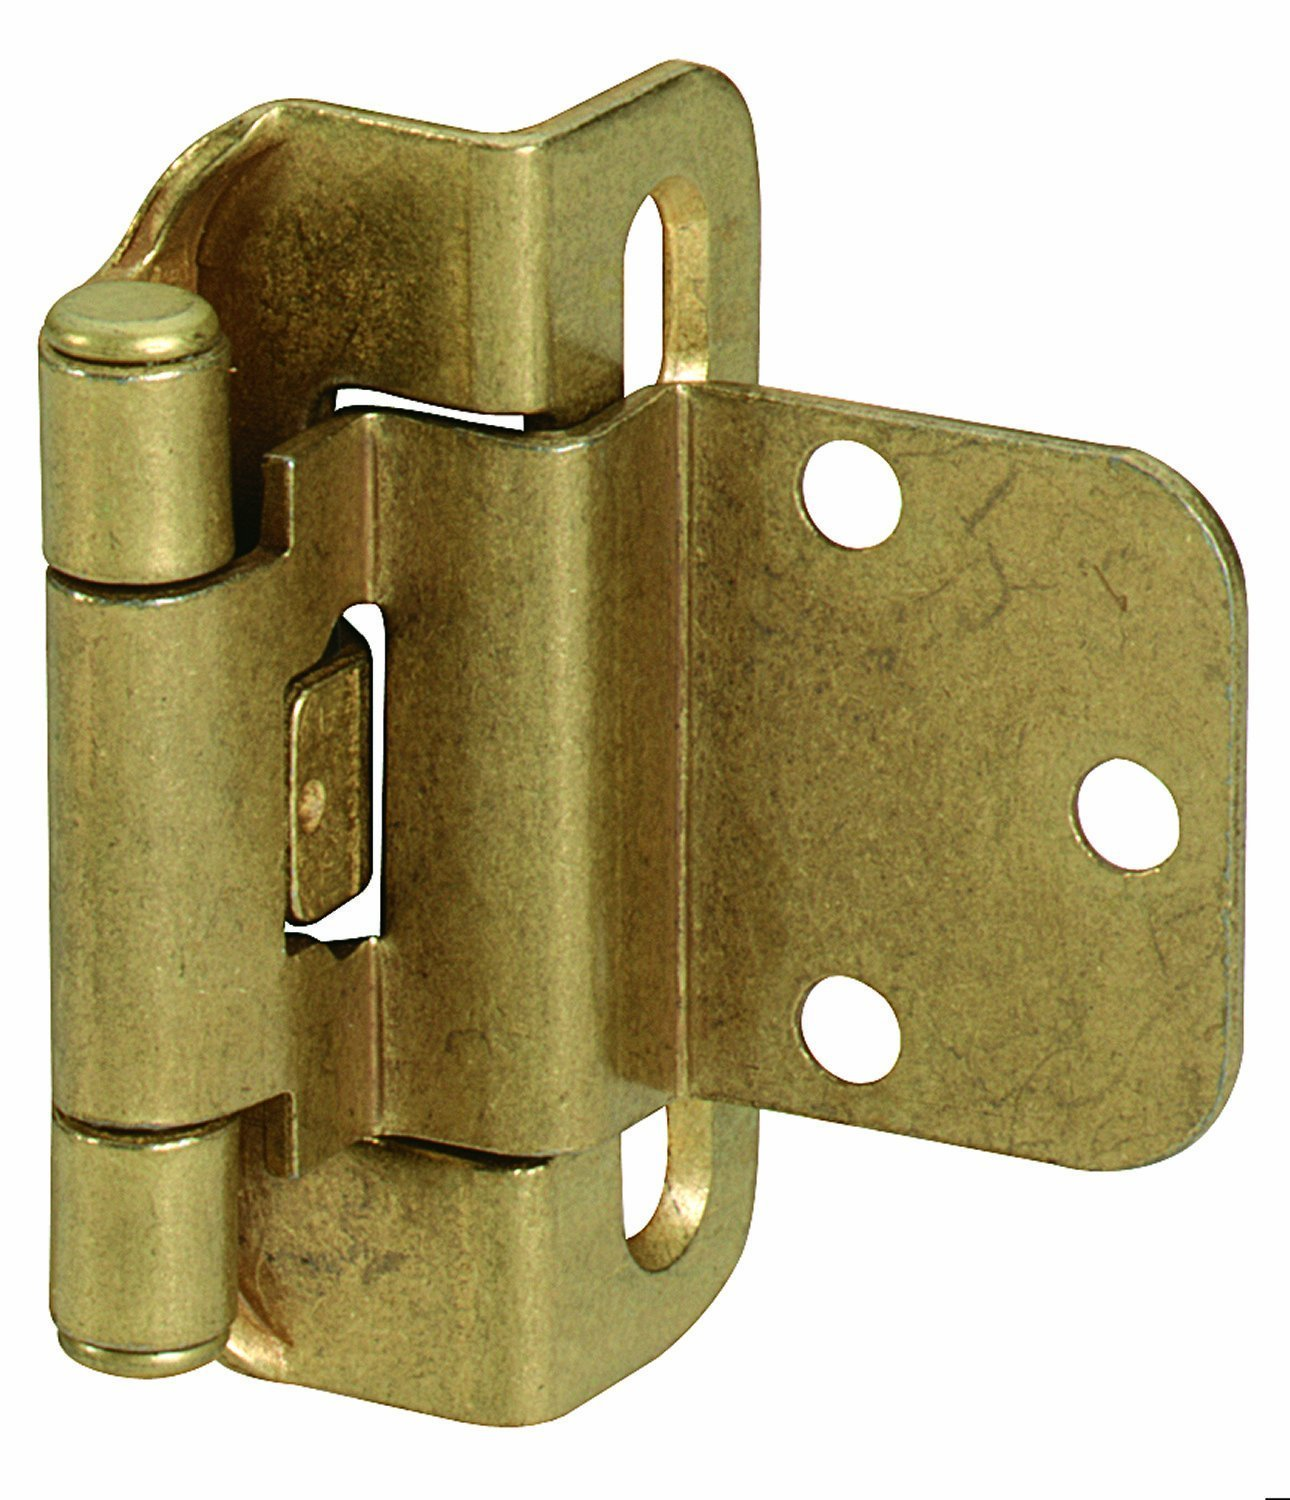 door pivot mansfield doors pinterest pin hinges flush residence closet hinge